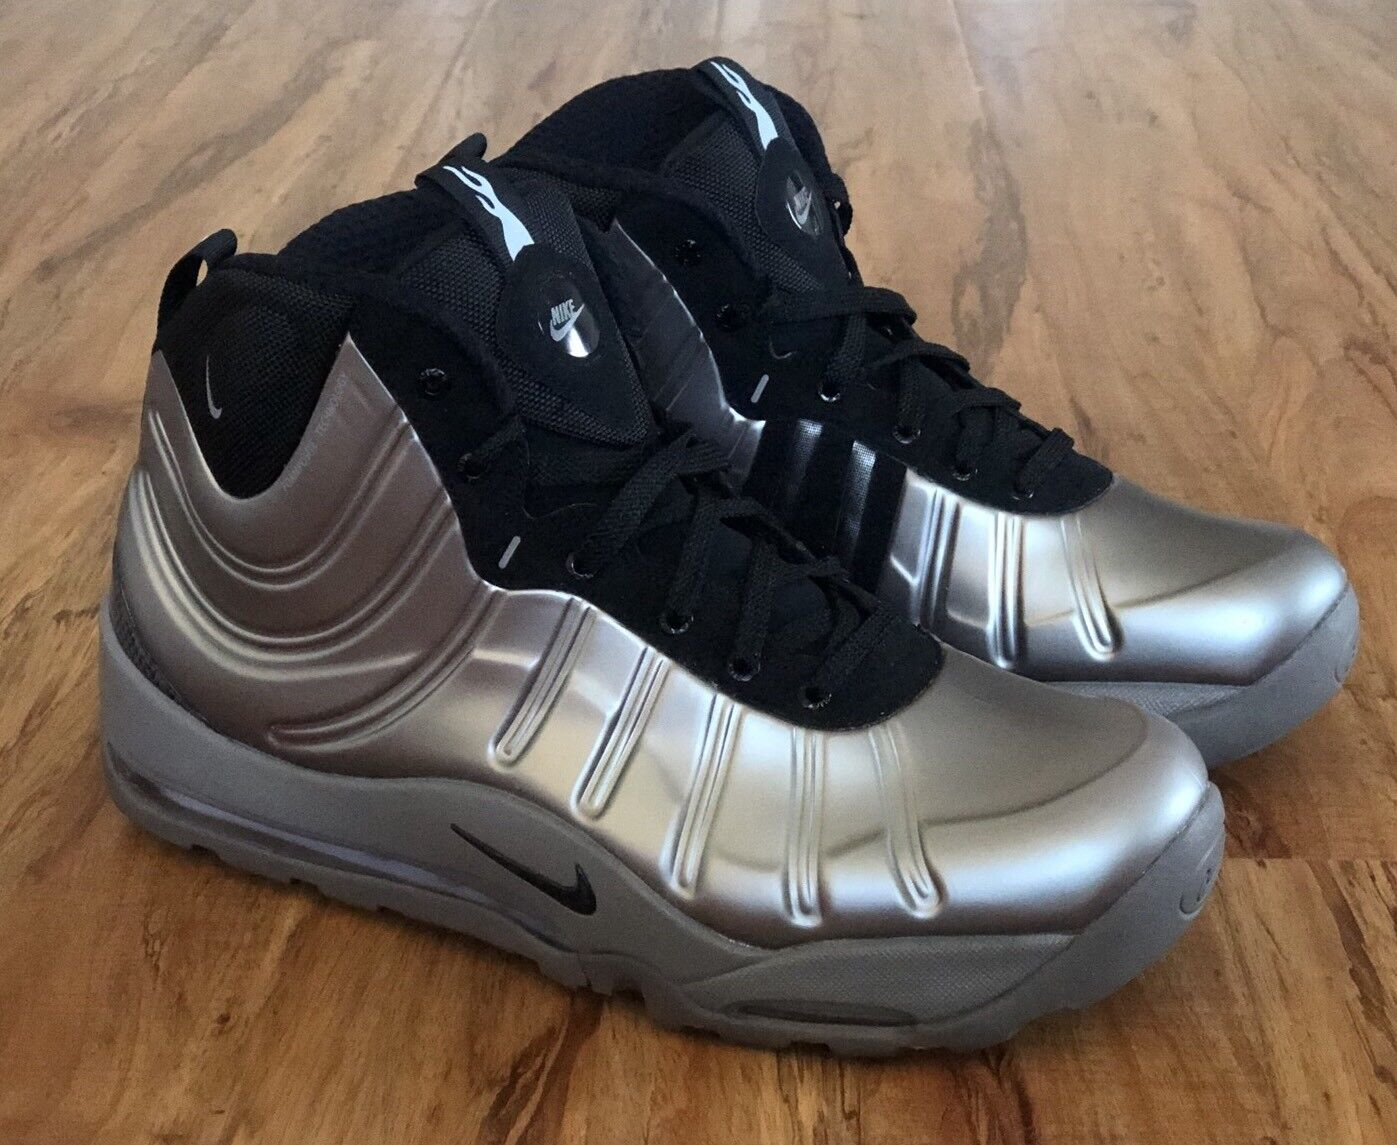 Nike Air Bakin Posite Metallic Pewter Black Silver Foamposite 618056-002 Size 12